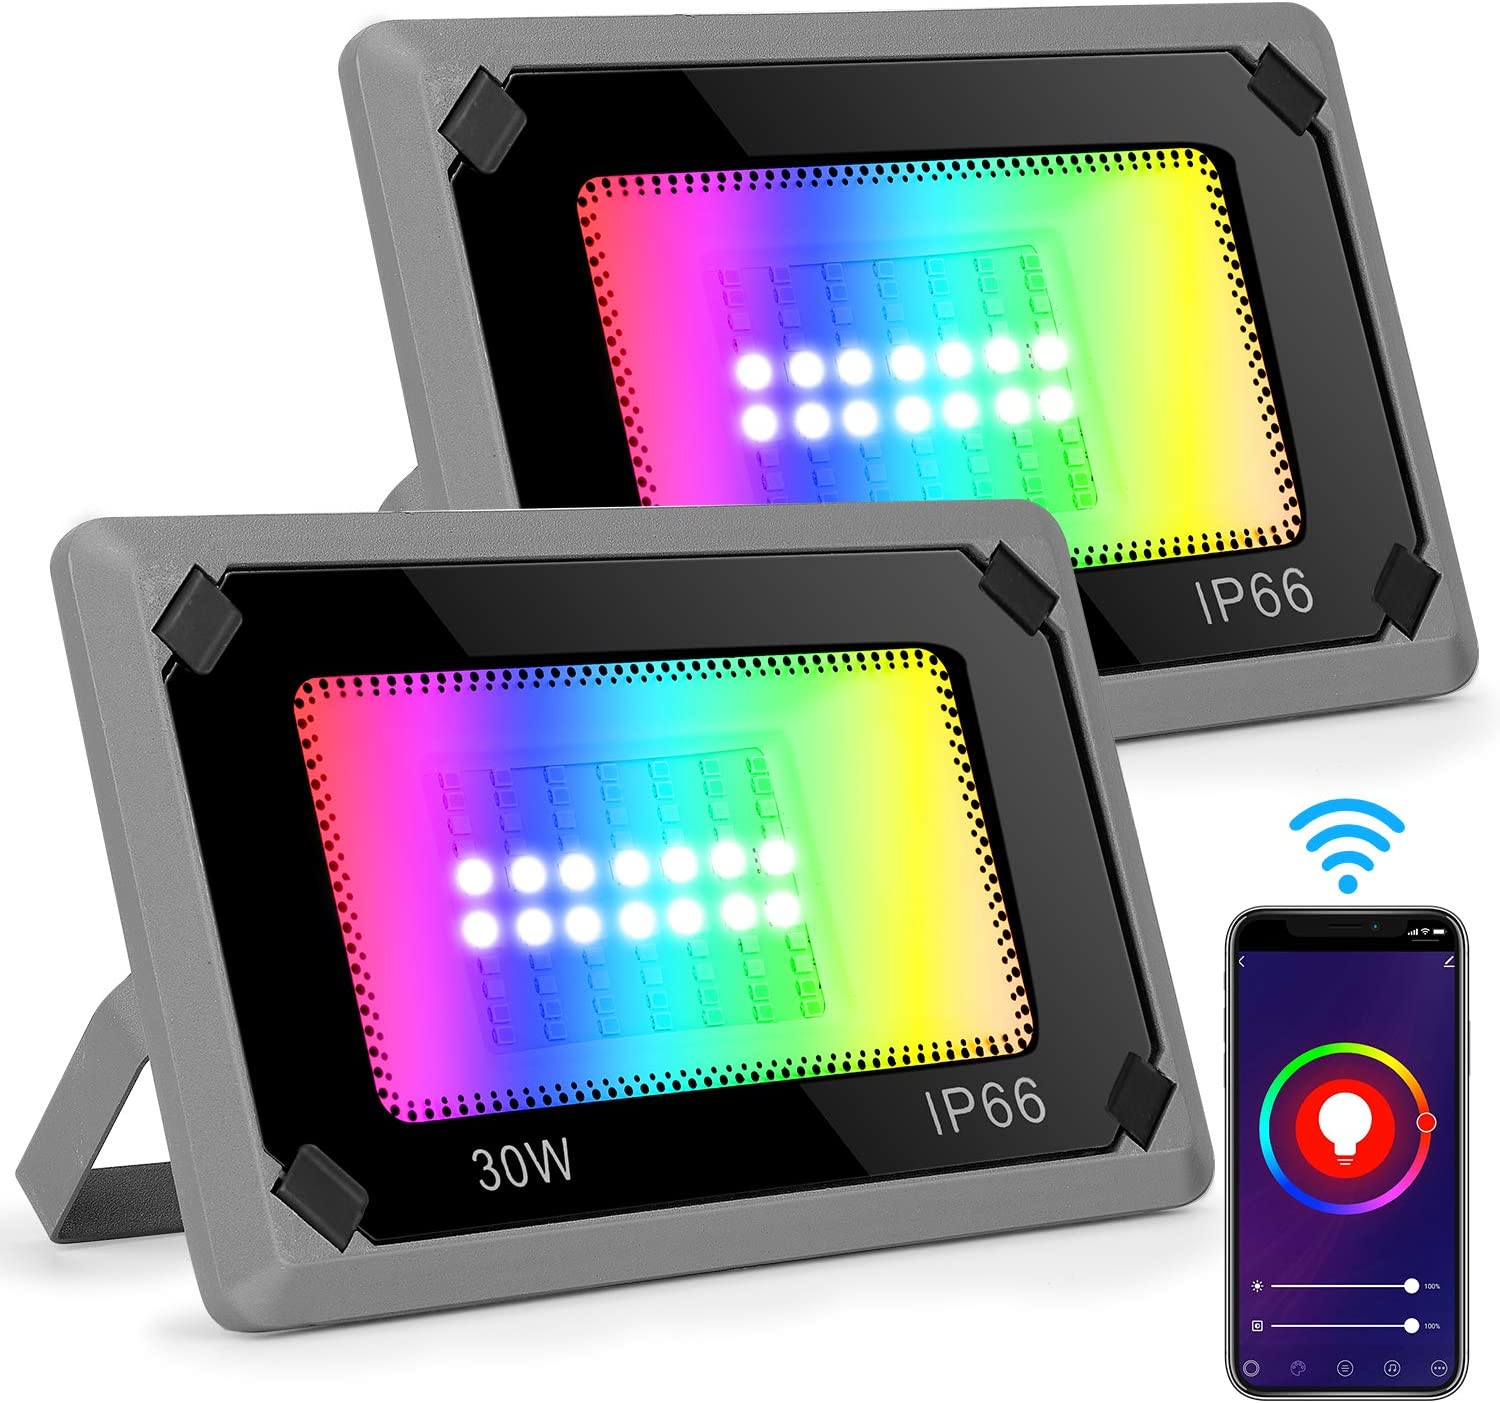 Flood Lights Outdoor 2 Pack, LED Flood Light 30W, Color Changing RGBCW Floodlight 2300LM 6500K, IP66 Waterproof WiFi Dimmable Wall Washer Light Christmas Lights for Yard Garden Stage Party Landscape